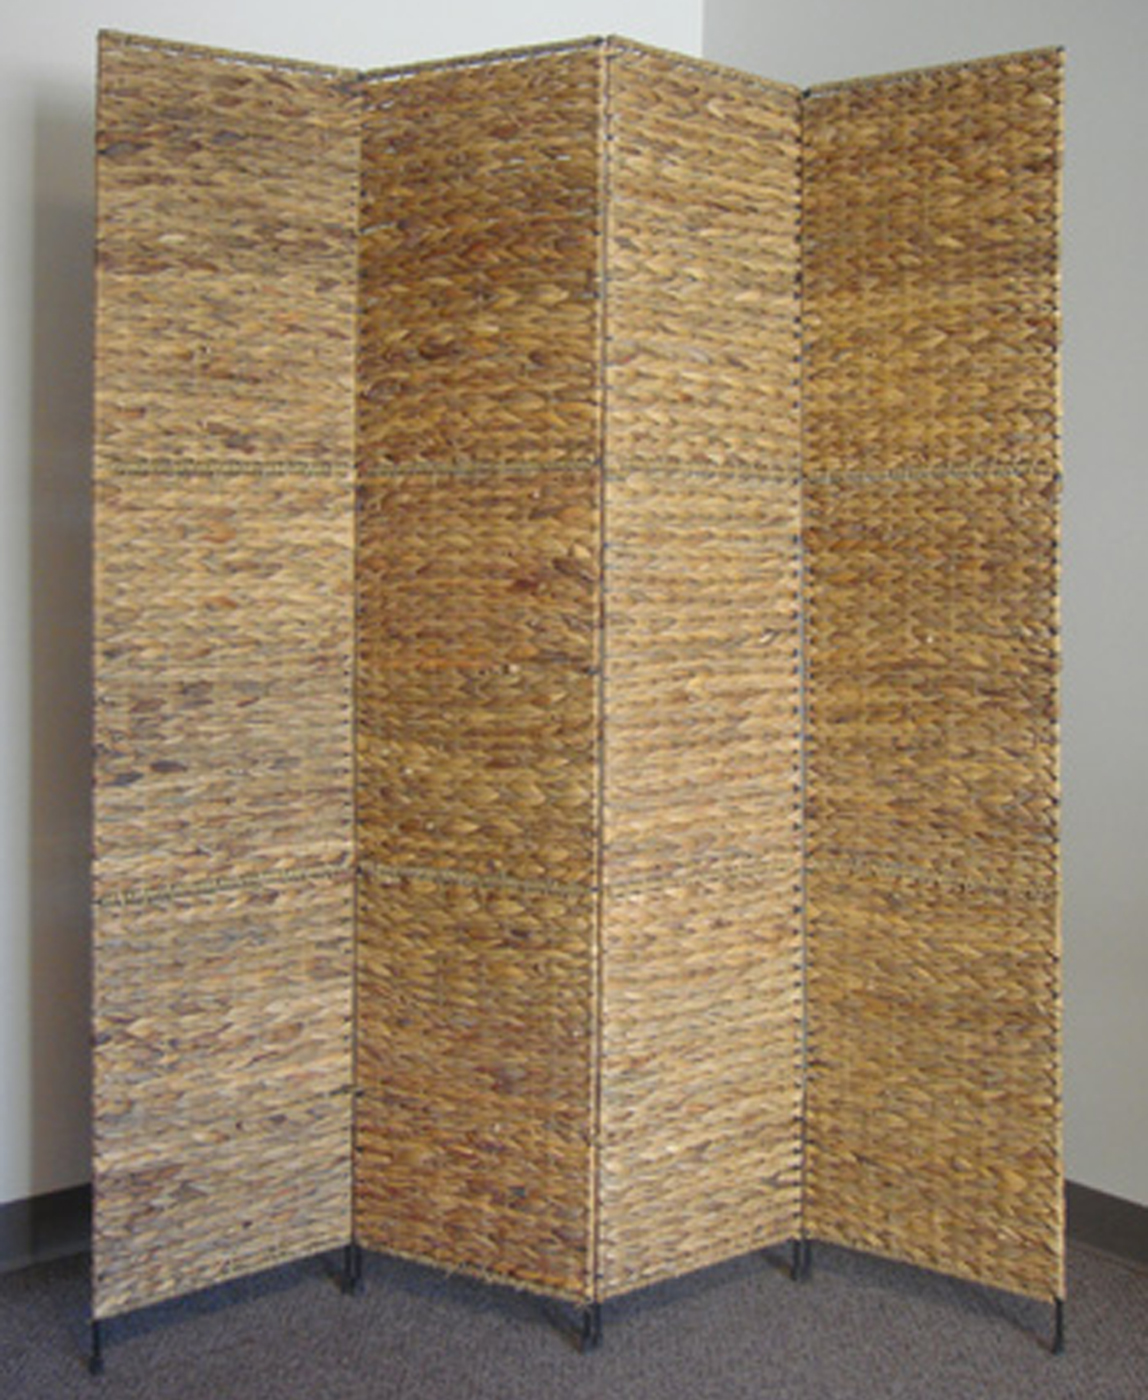 4panel wooden room divider by ore jakarta folding screen by proman products